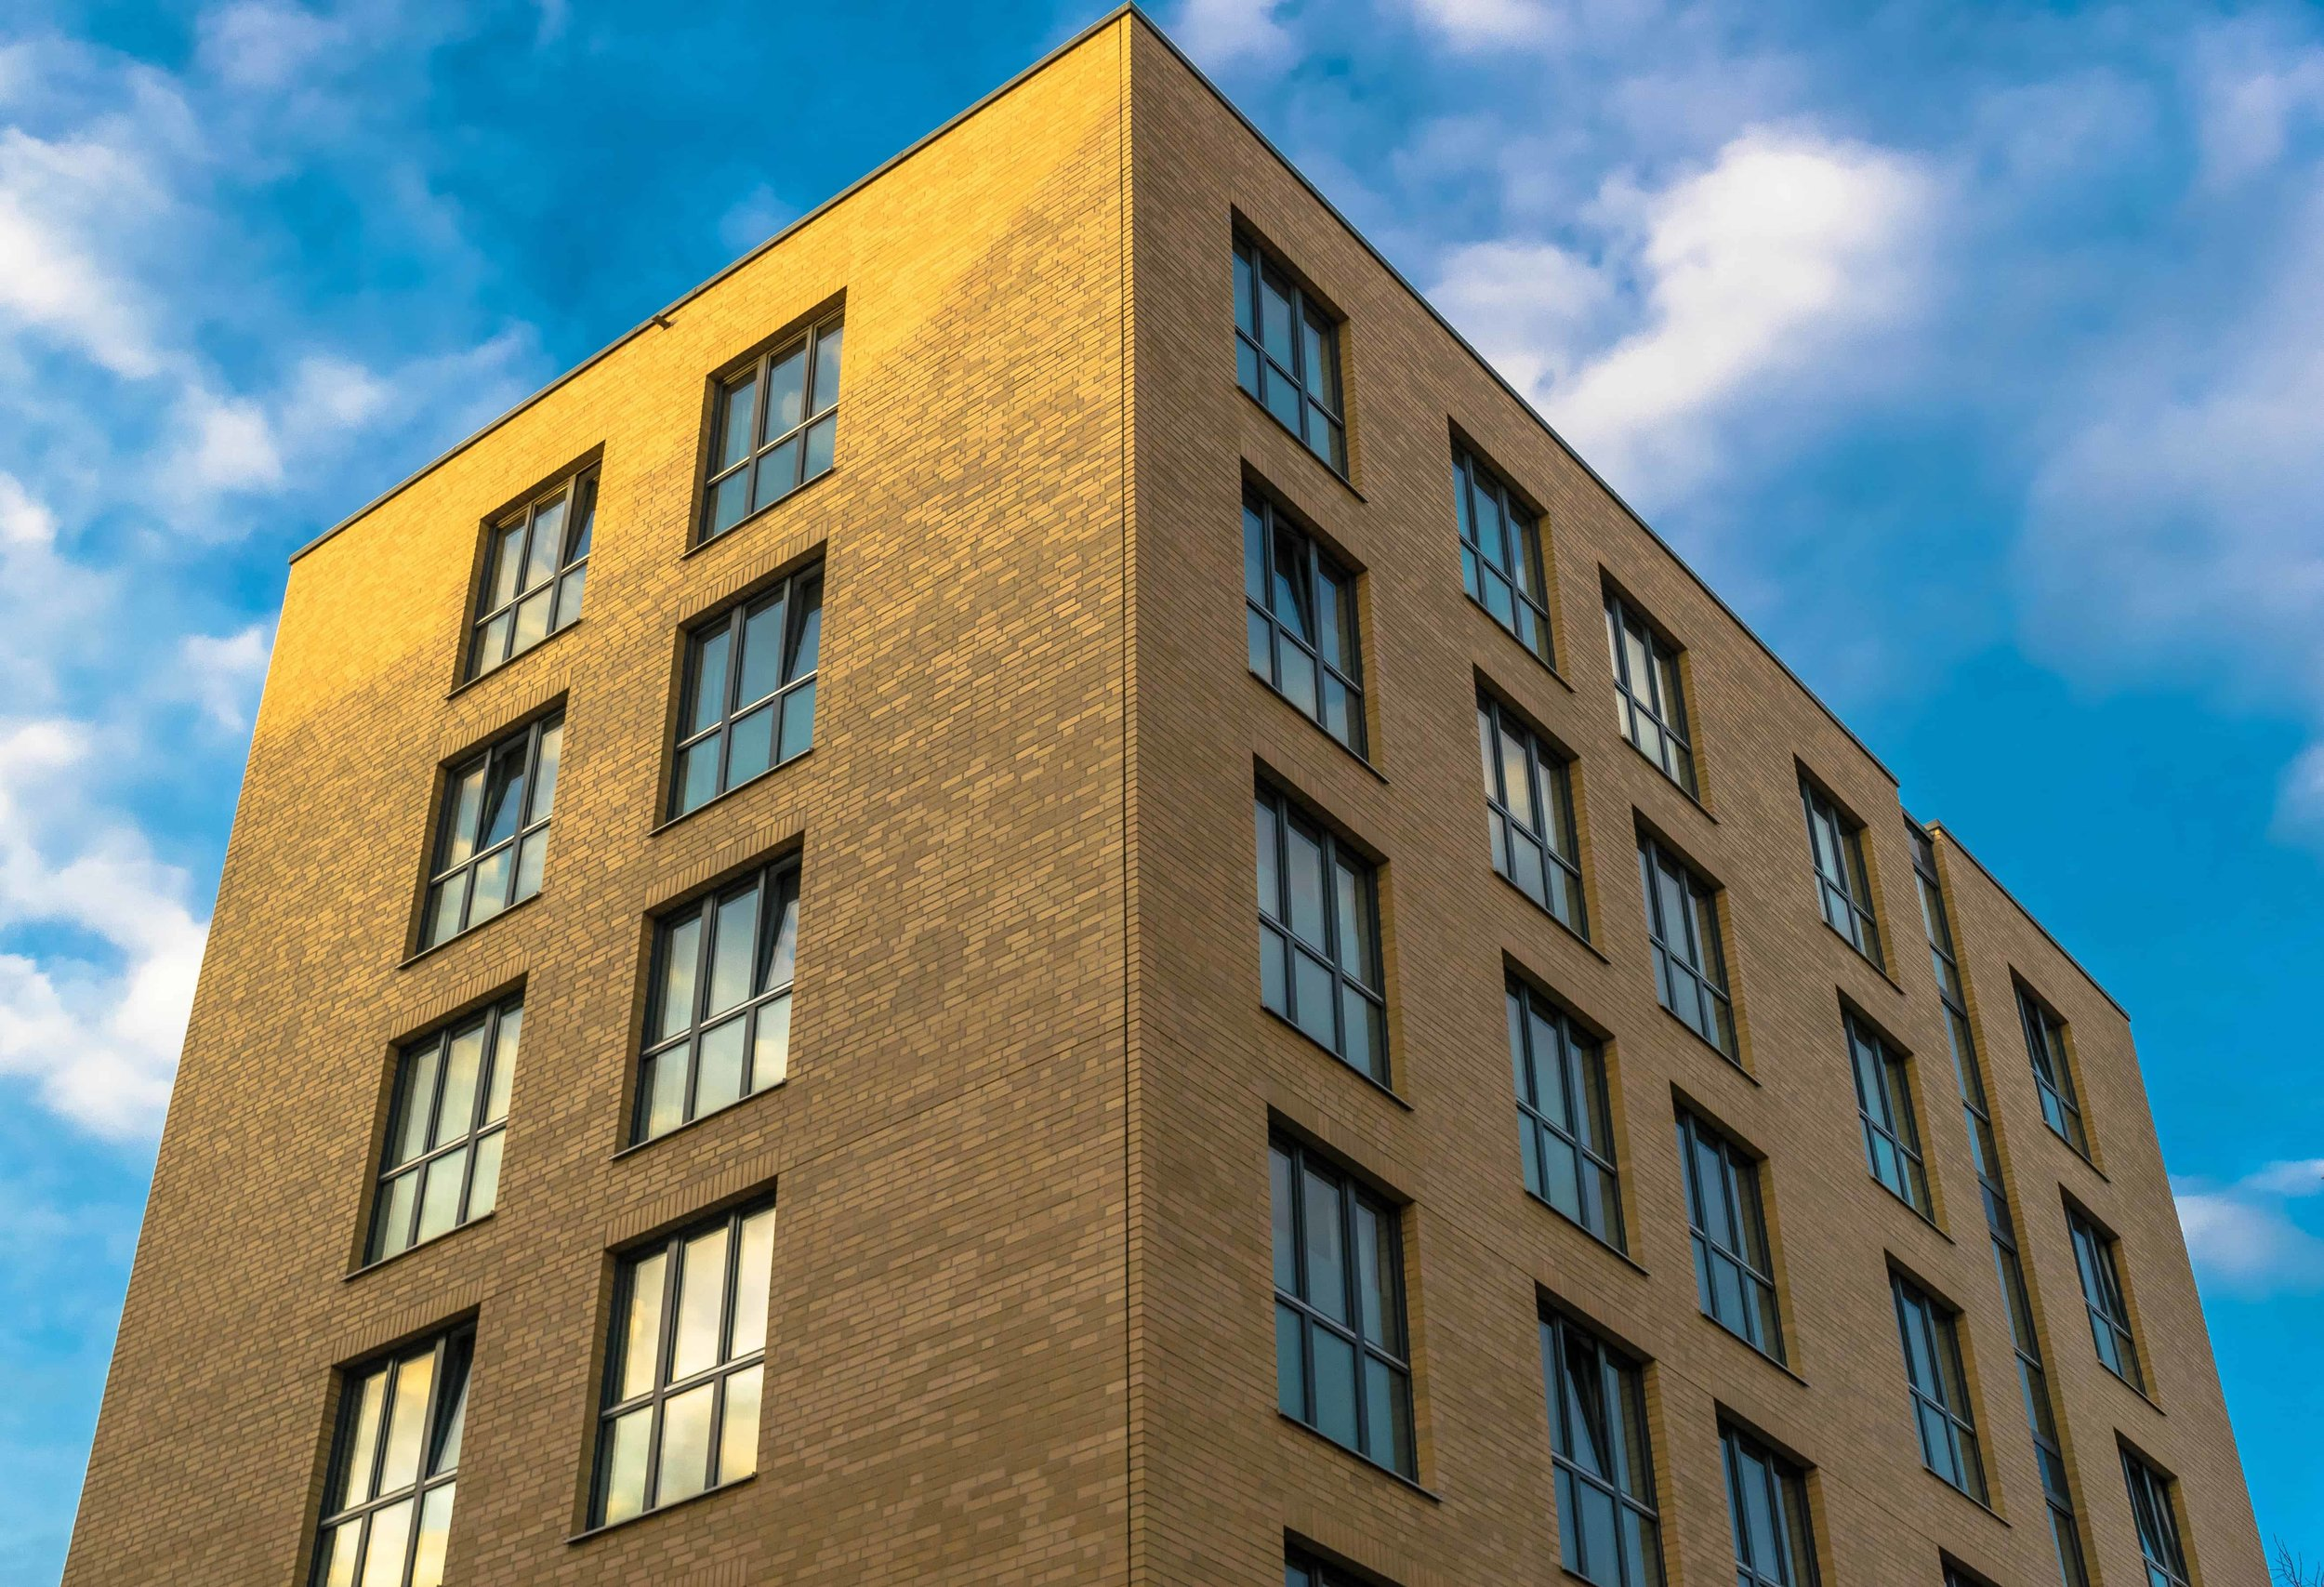 real-estate-attorney-advice-hidden-costs-commercial-leasing-minneapolis.jpg